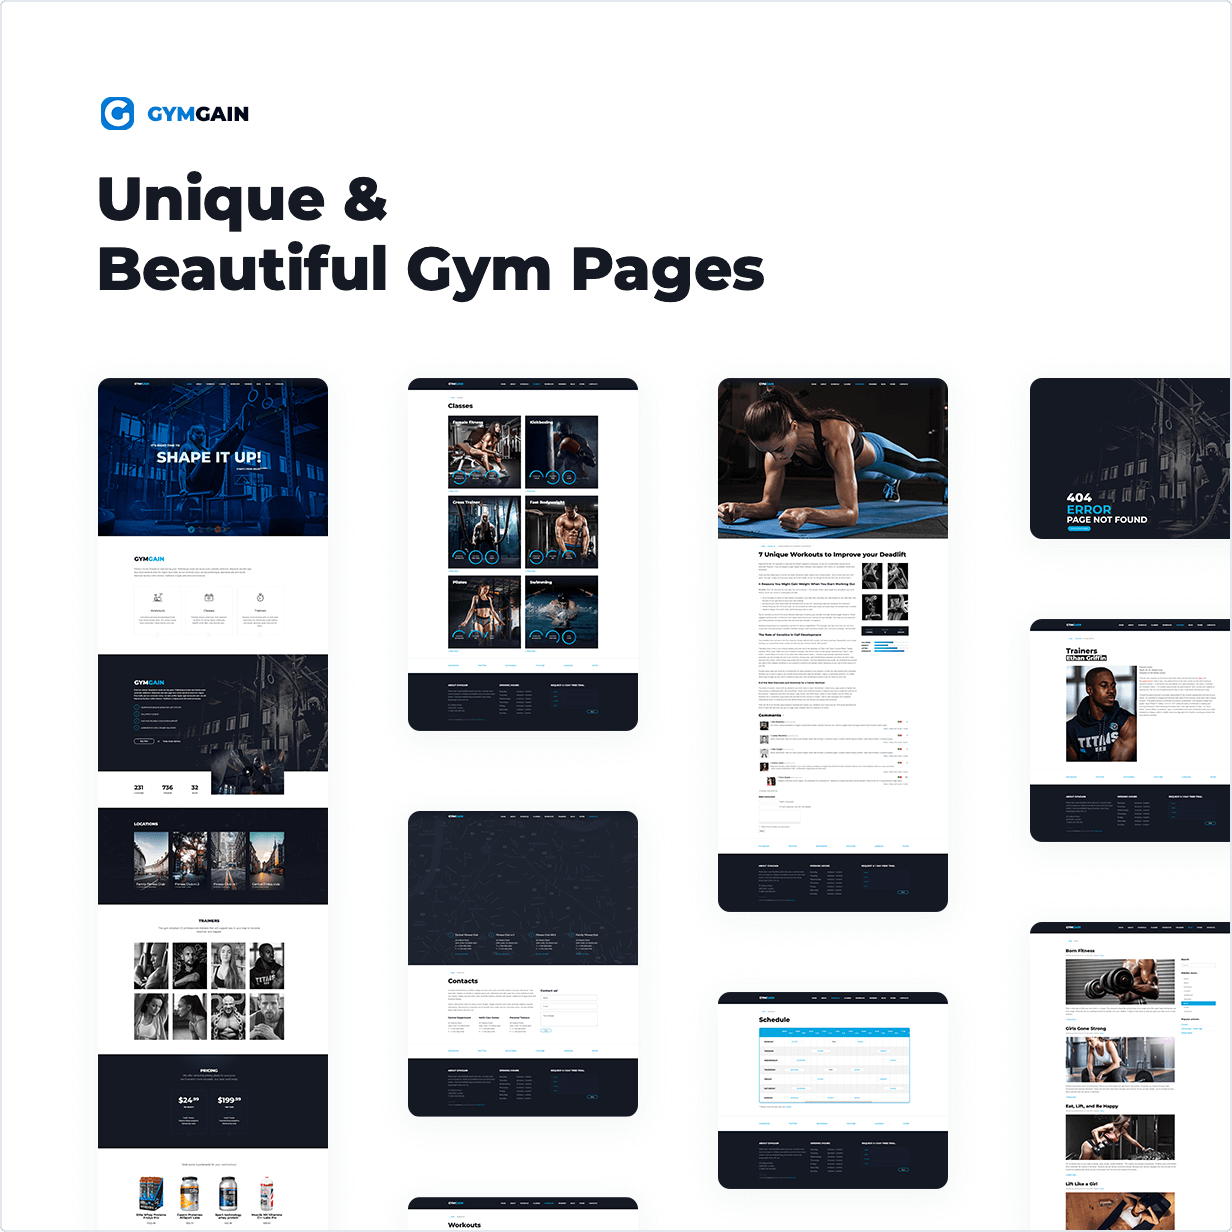 Unique & Beautiful Gym Pages